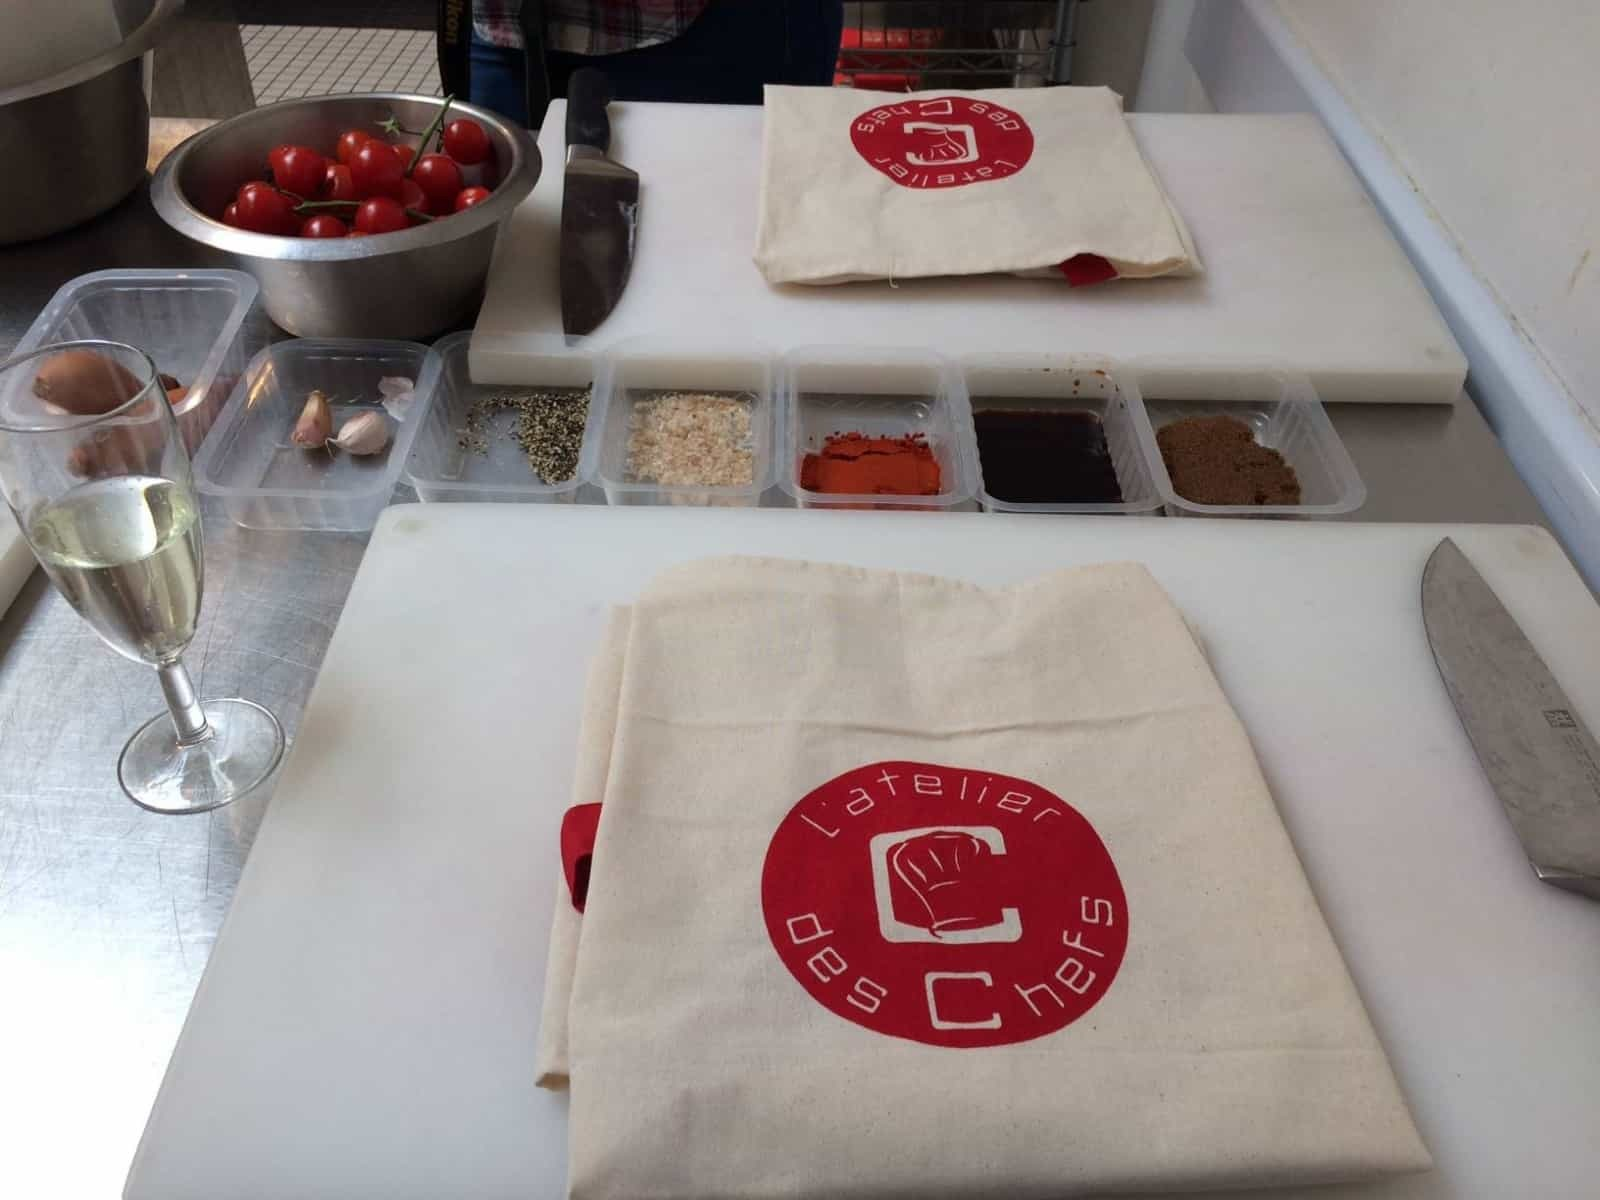 Lunchtime cooking class from L'atelier des Chefs and Tefal